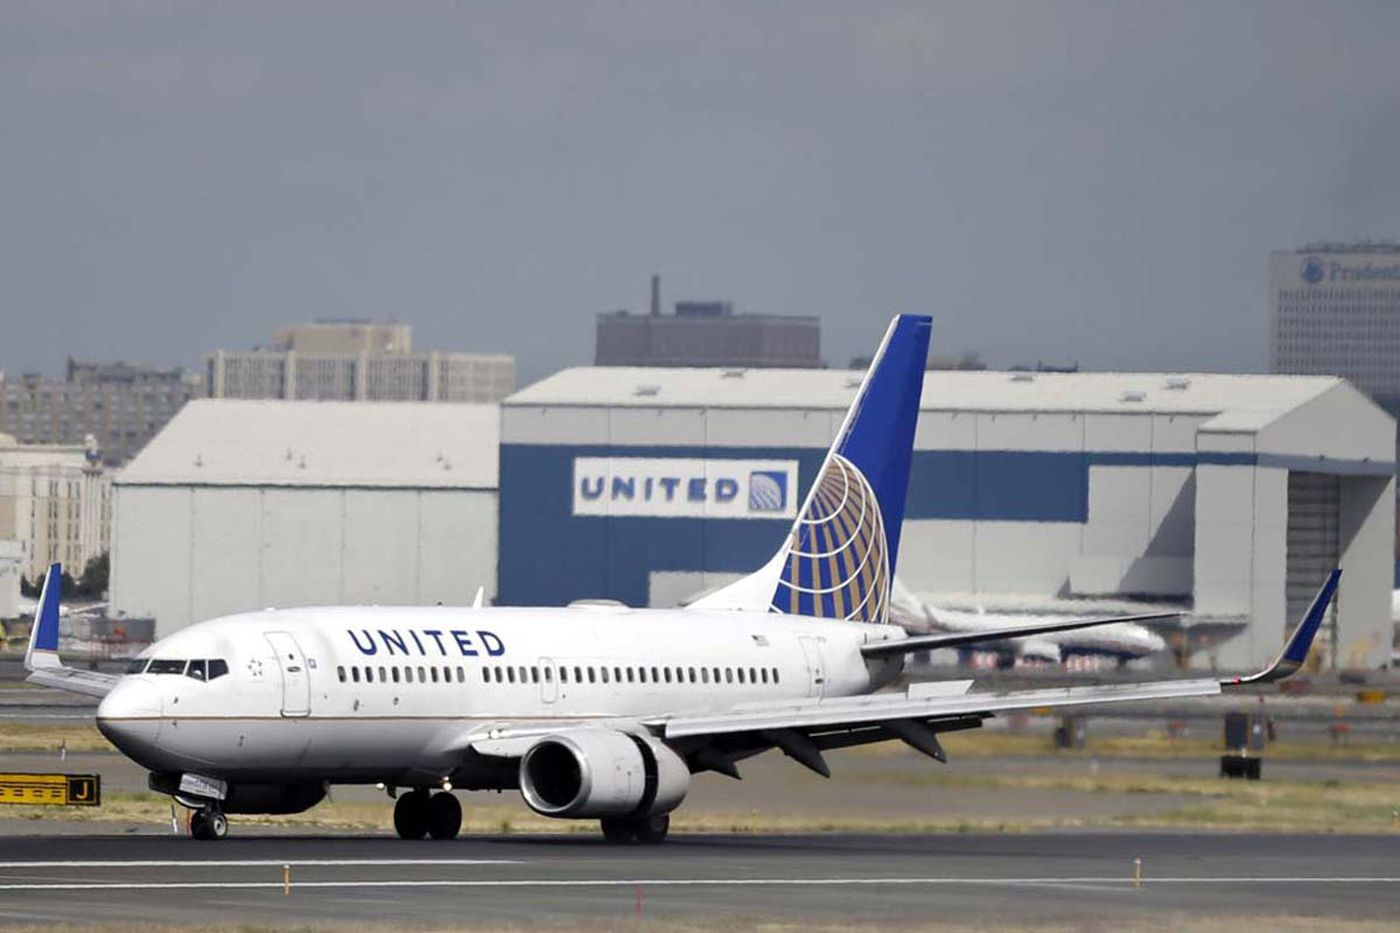 United Airlines CEO calls passenger's removal 'a watershed moment'